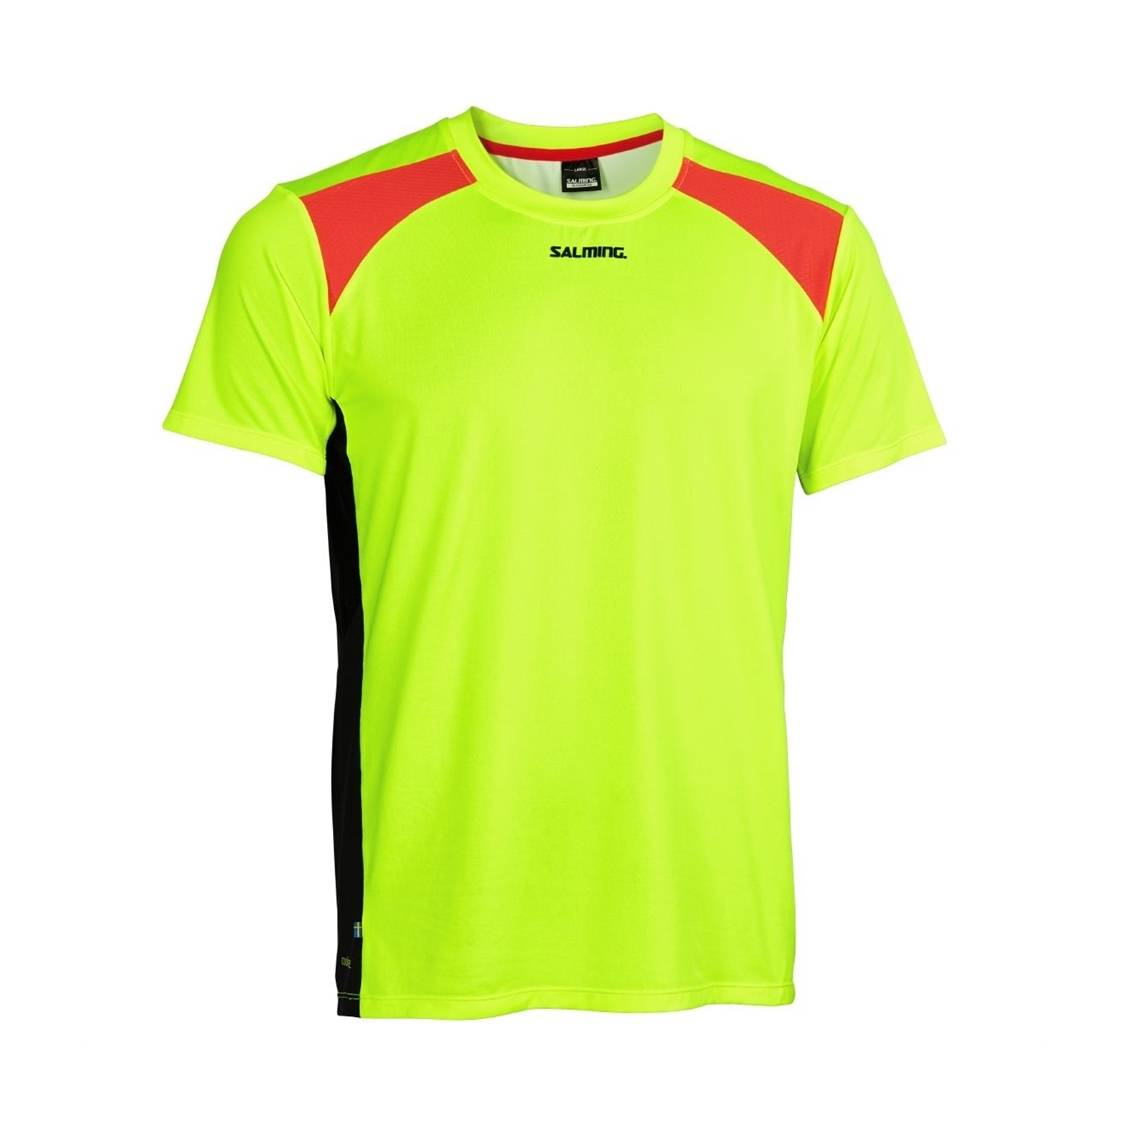 Salming Challenge Tee Yellow S